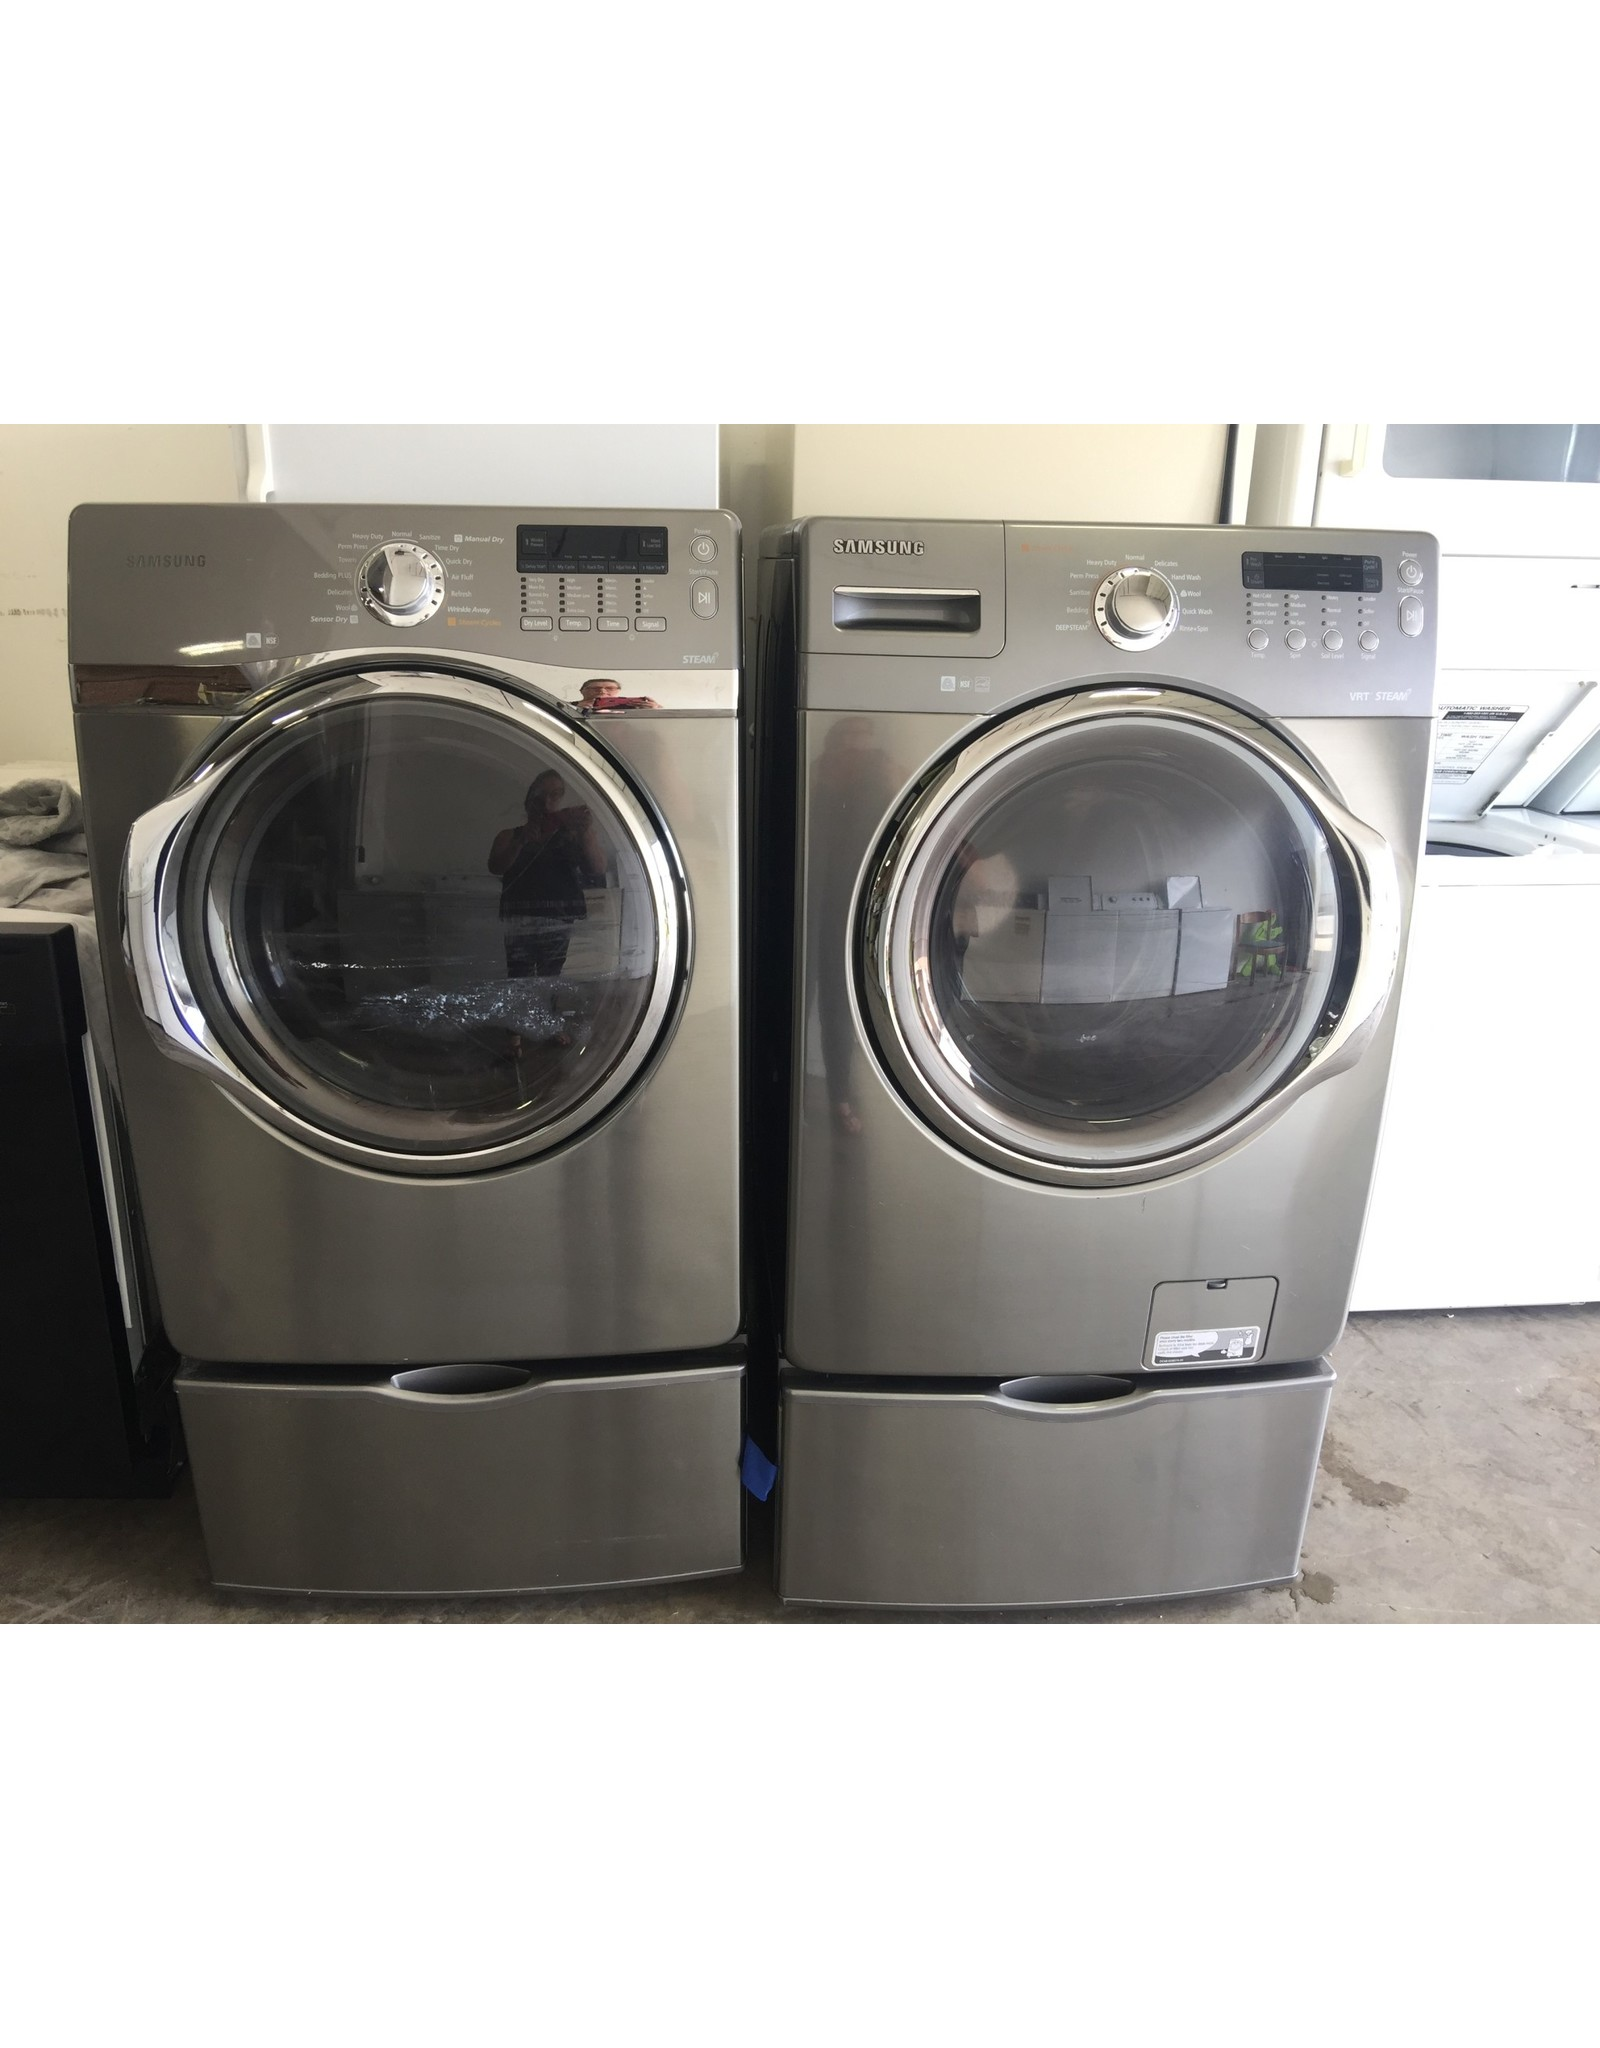 SAMSUNG SAMSUNG FRONT LOAD STEAM DRYER W/PEDESTAL IN STEEL GRAY